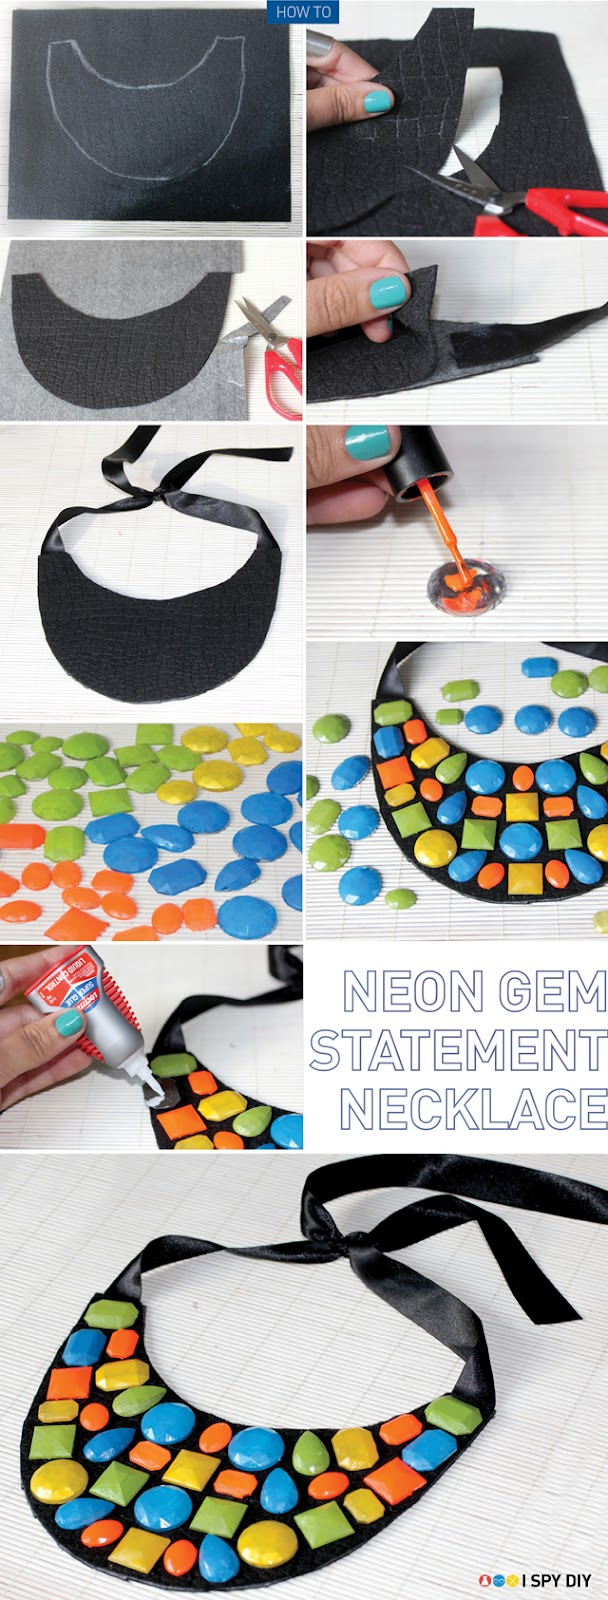 Neon Gem Necklace